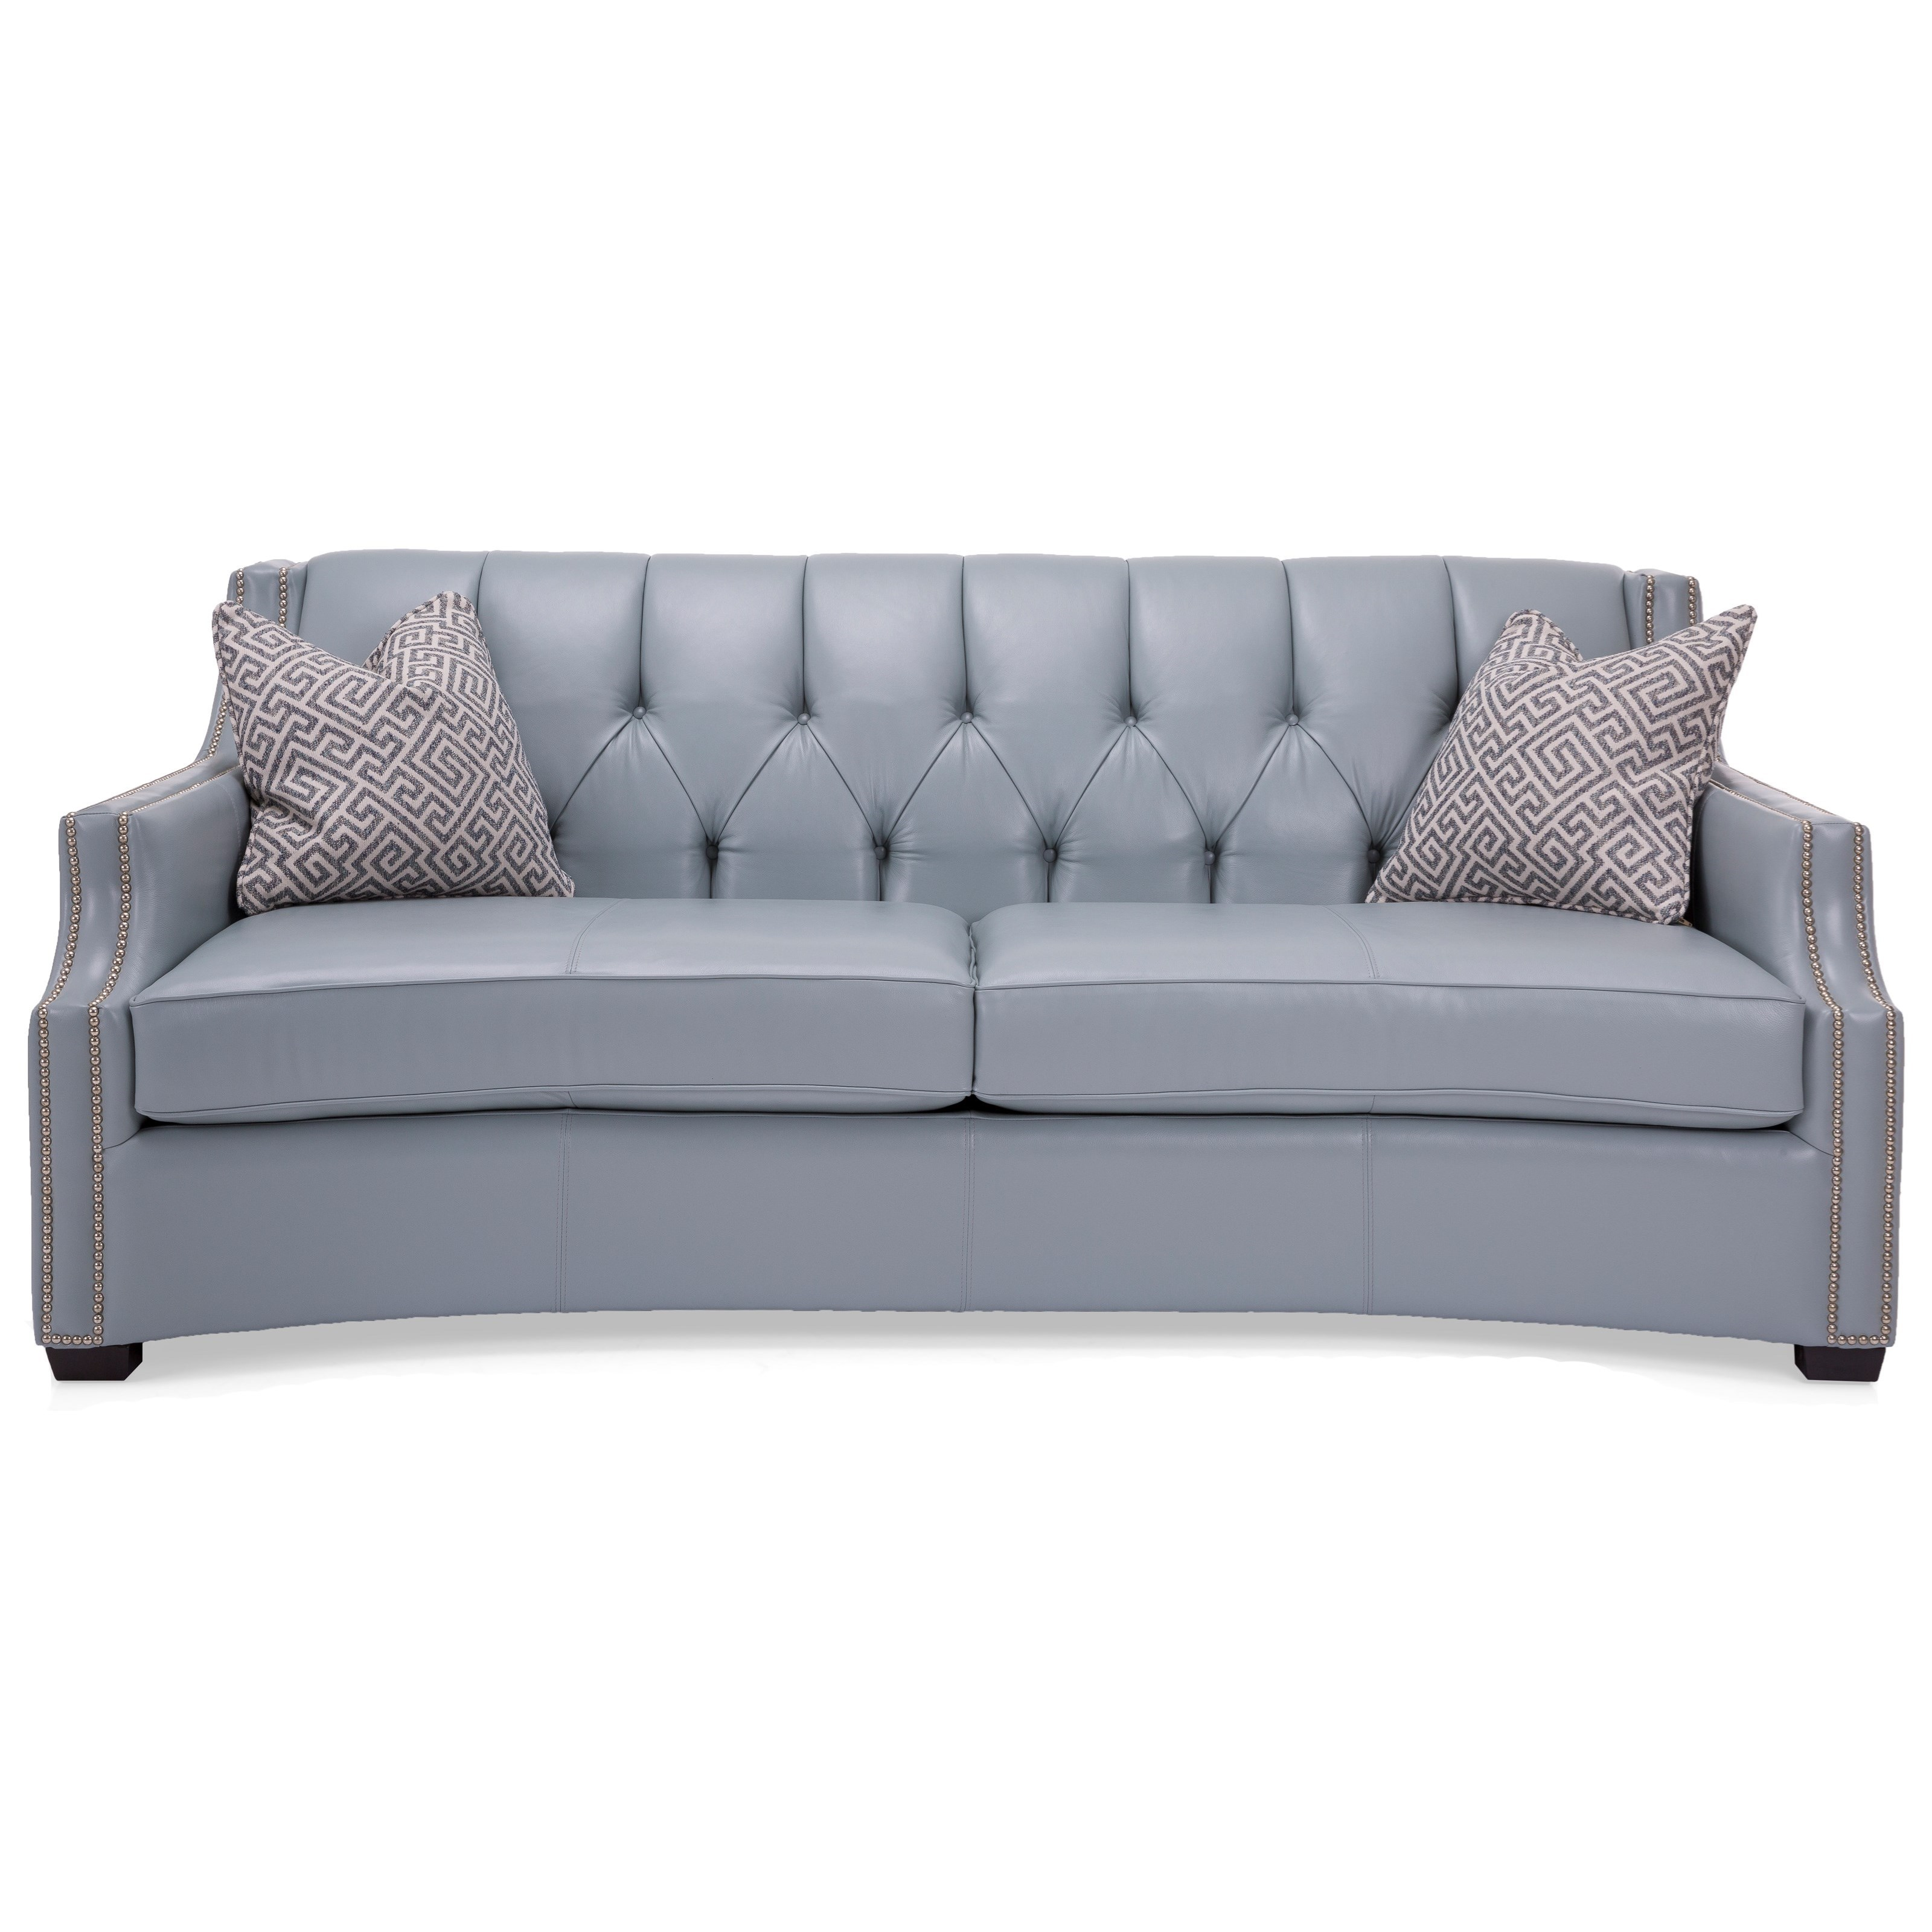 2789 Sofa by Decor-Rest at Stoney Creek Furniture